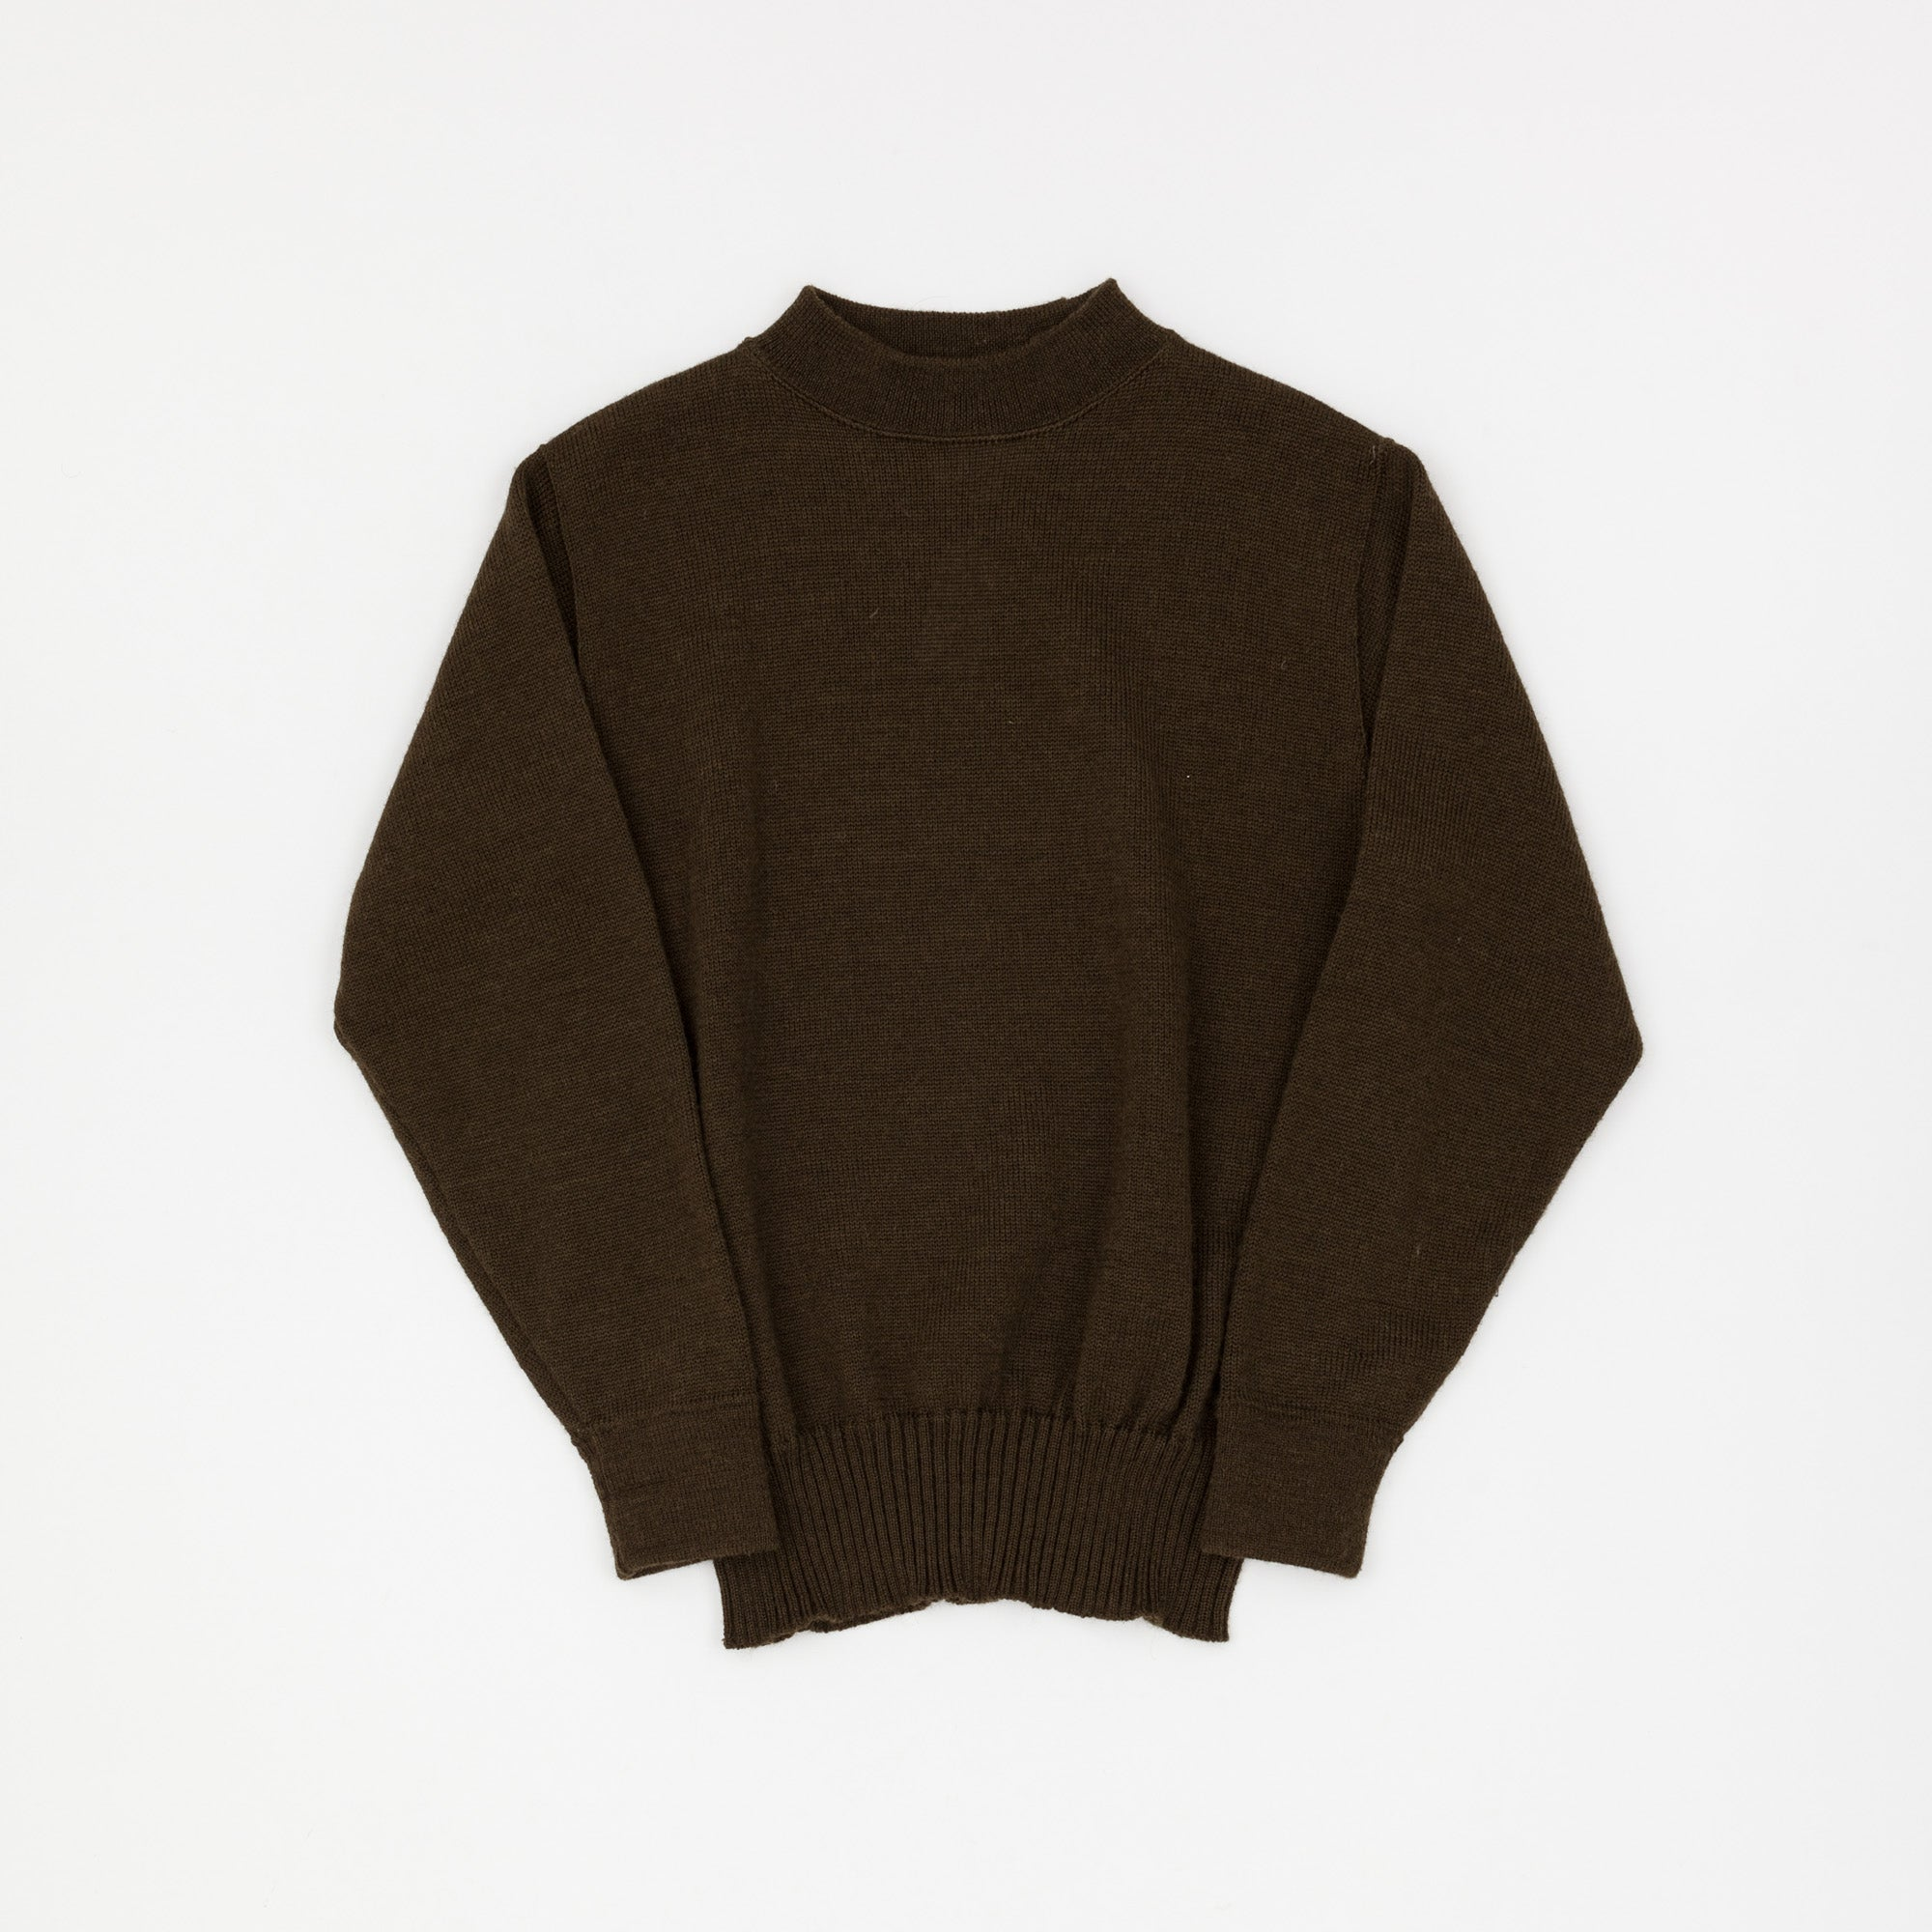 U.S.N Wool Sweater